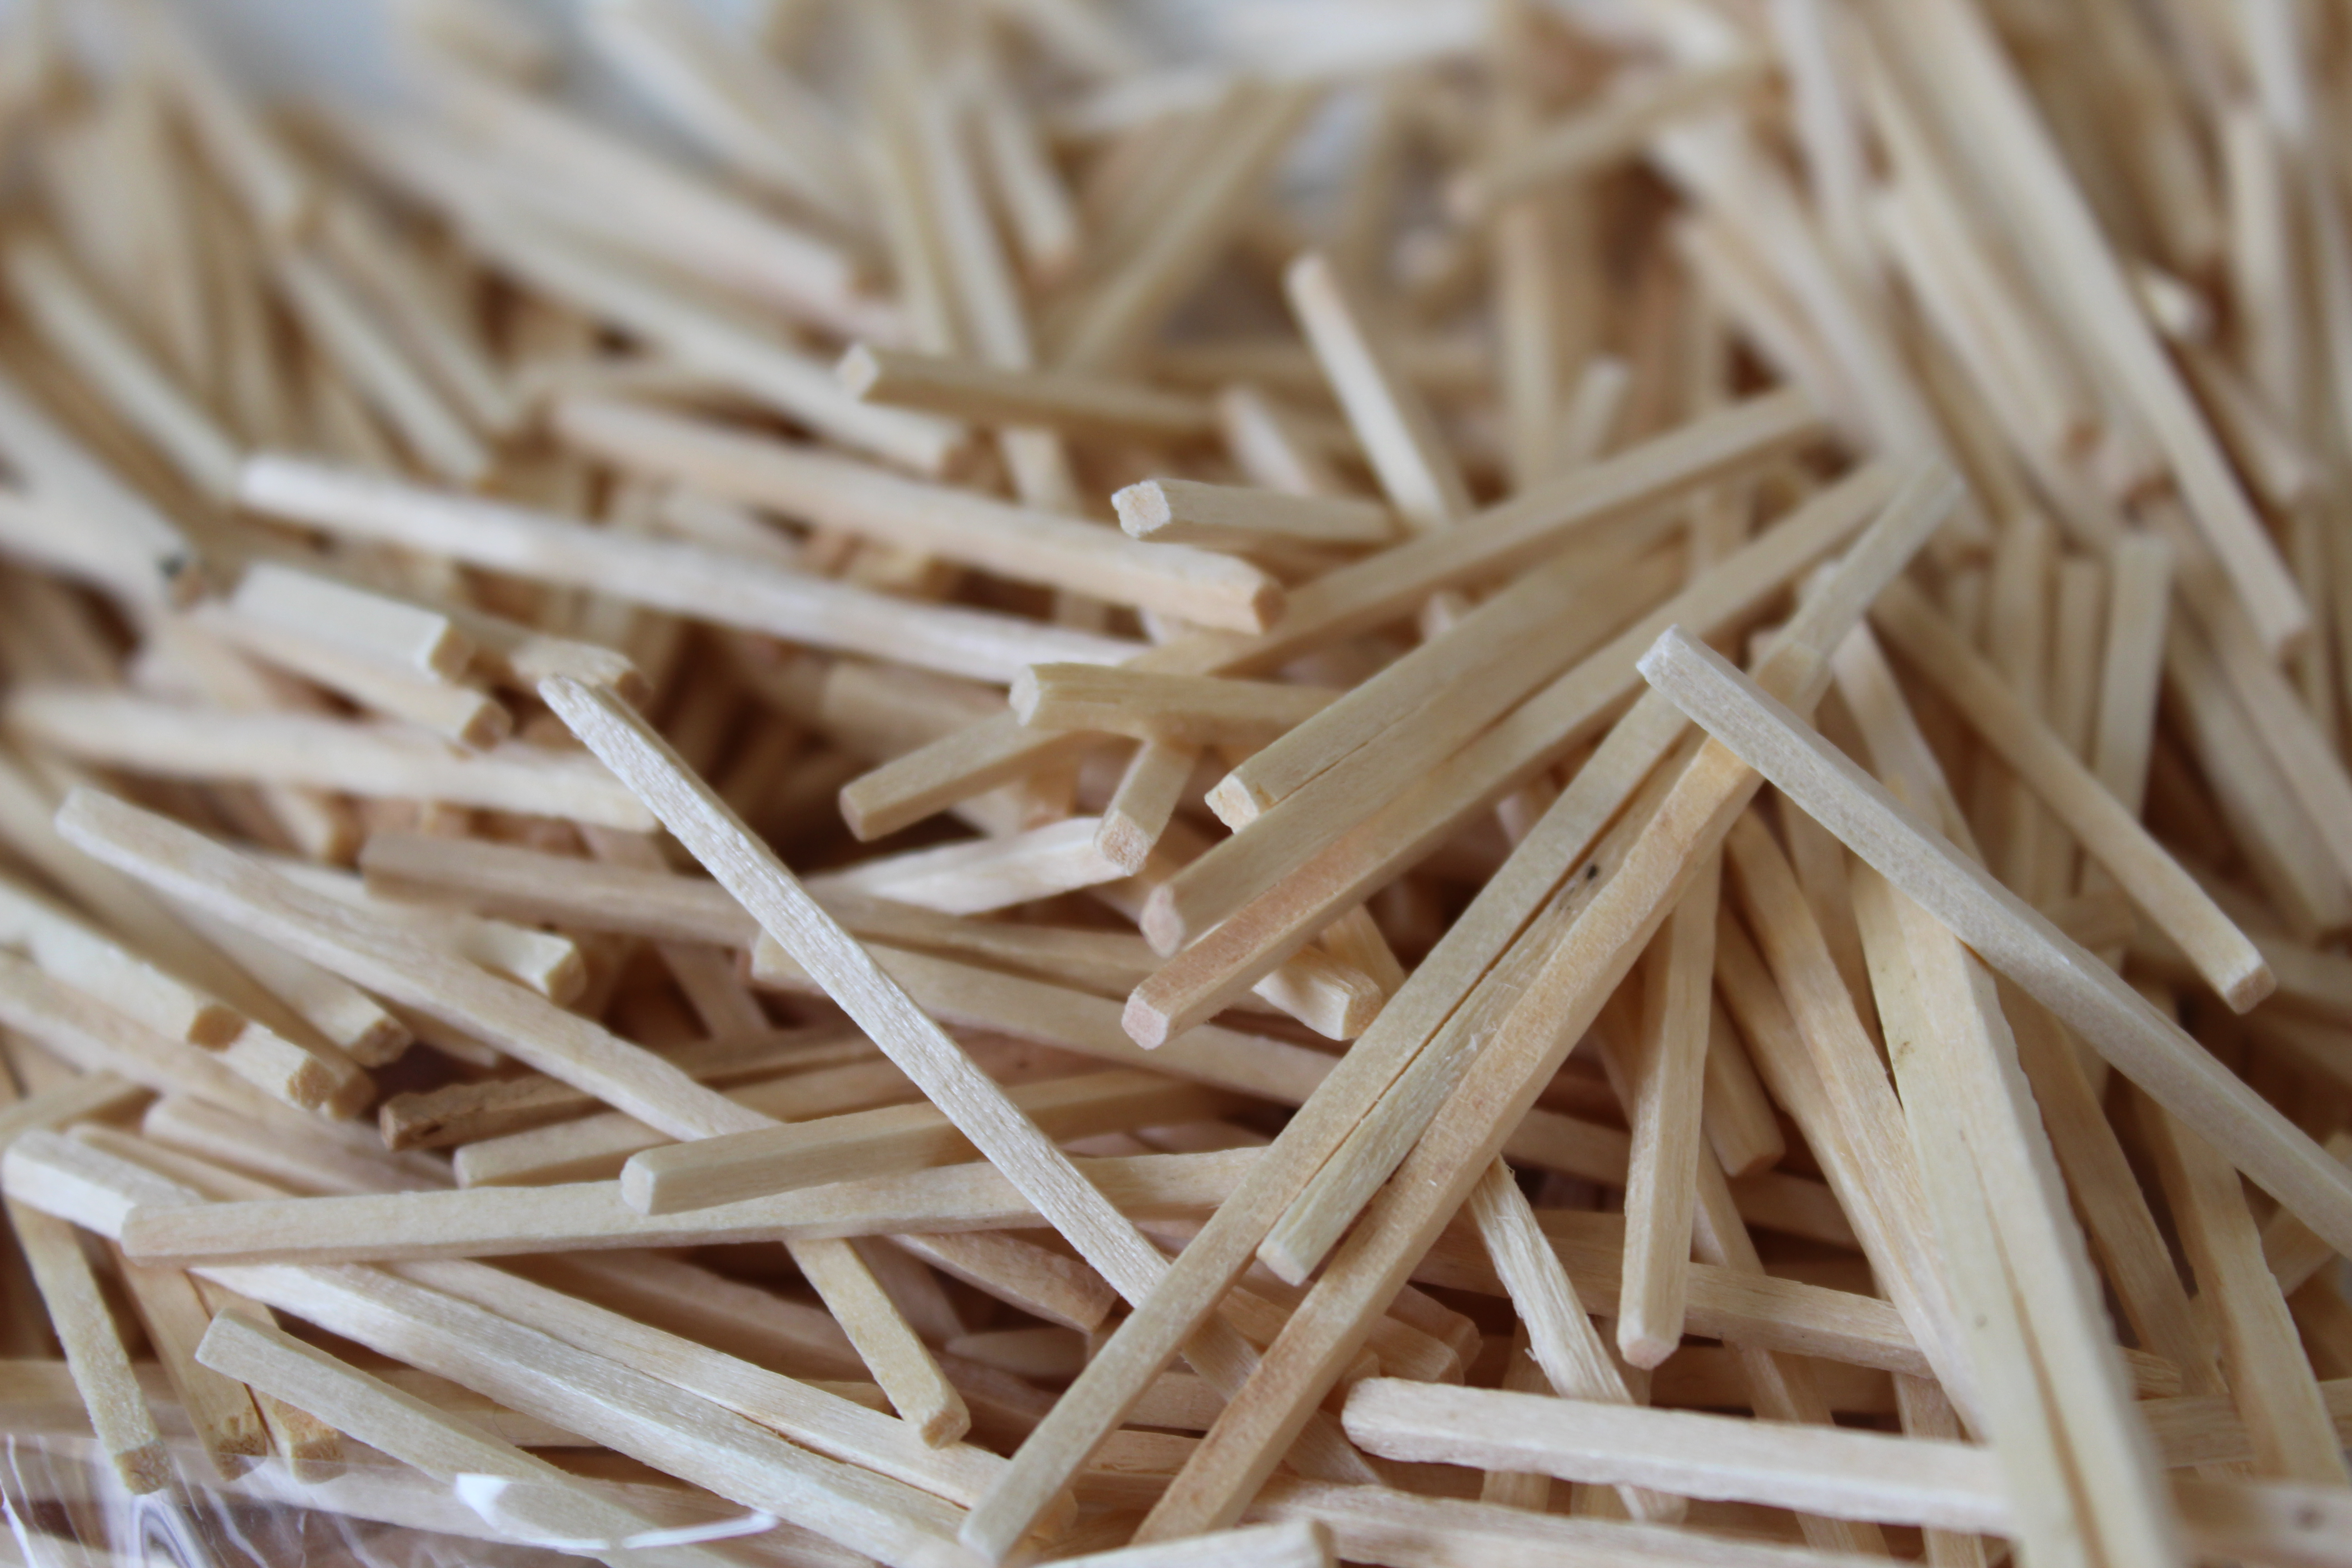 aperiodical.com - Katie Steckles - Mathematical Objects: Pile of matchsticks